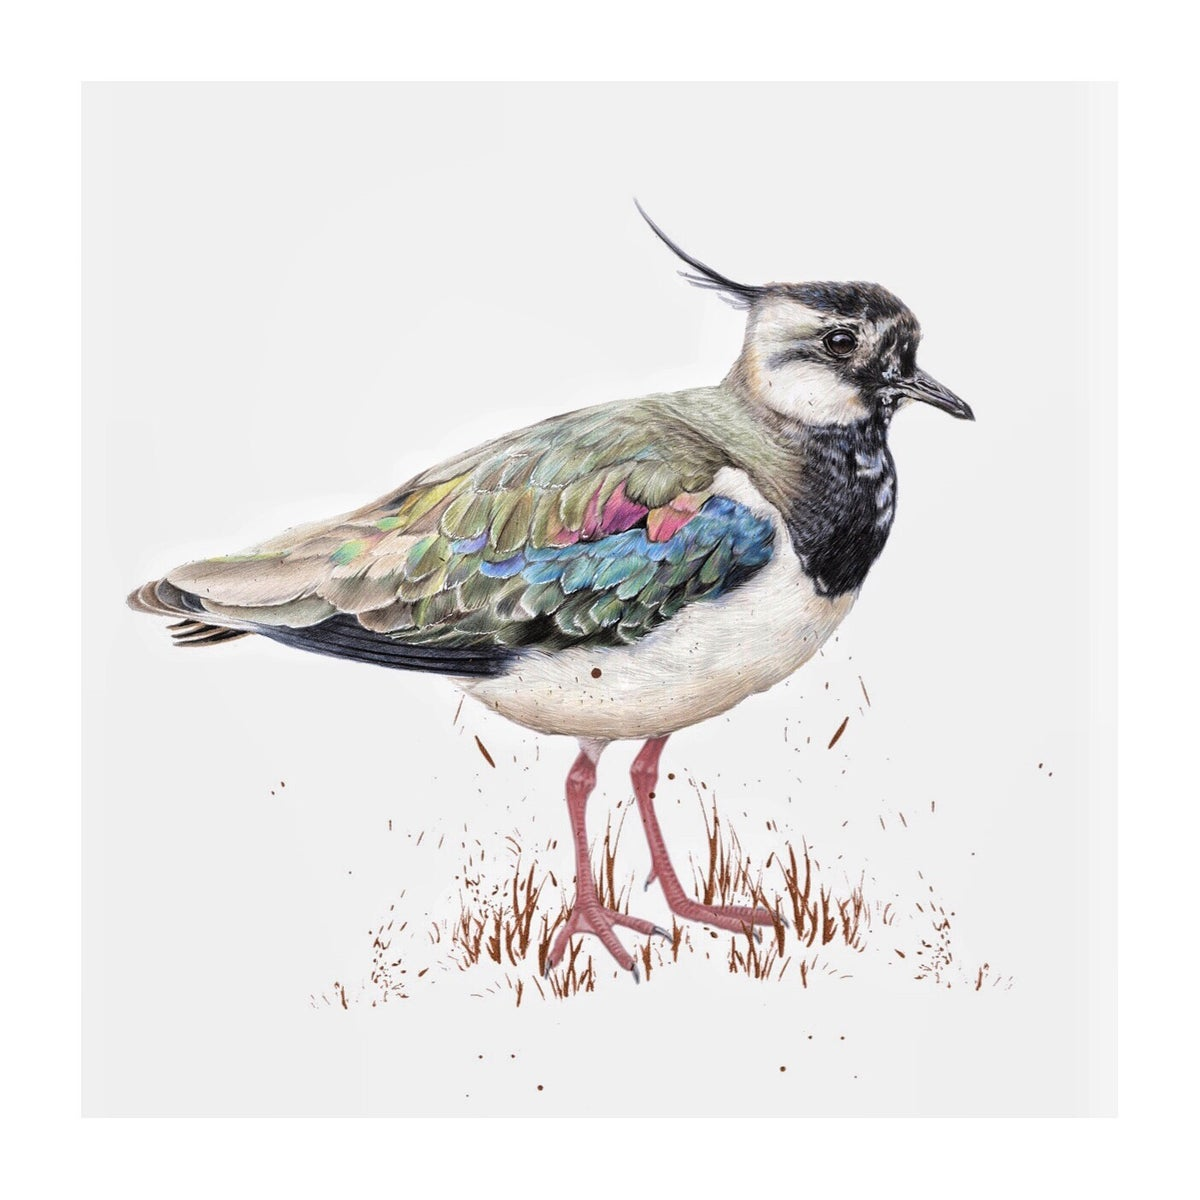 Image of 'Lapwing' Limited Edition Print (Hand Embellished)